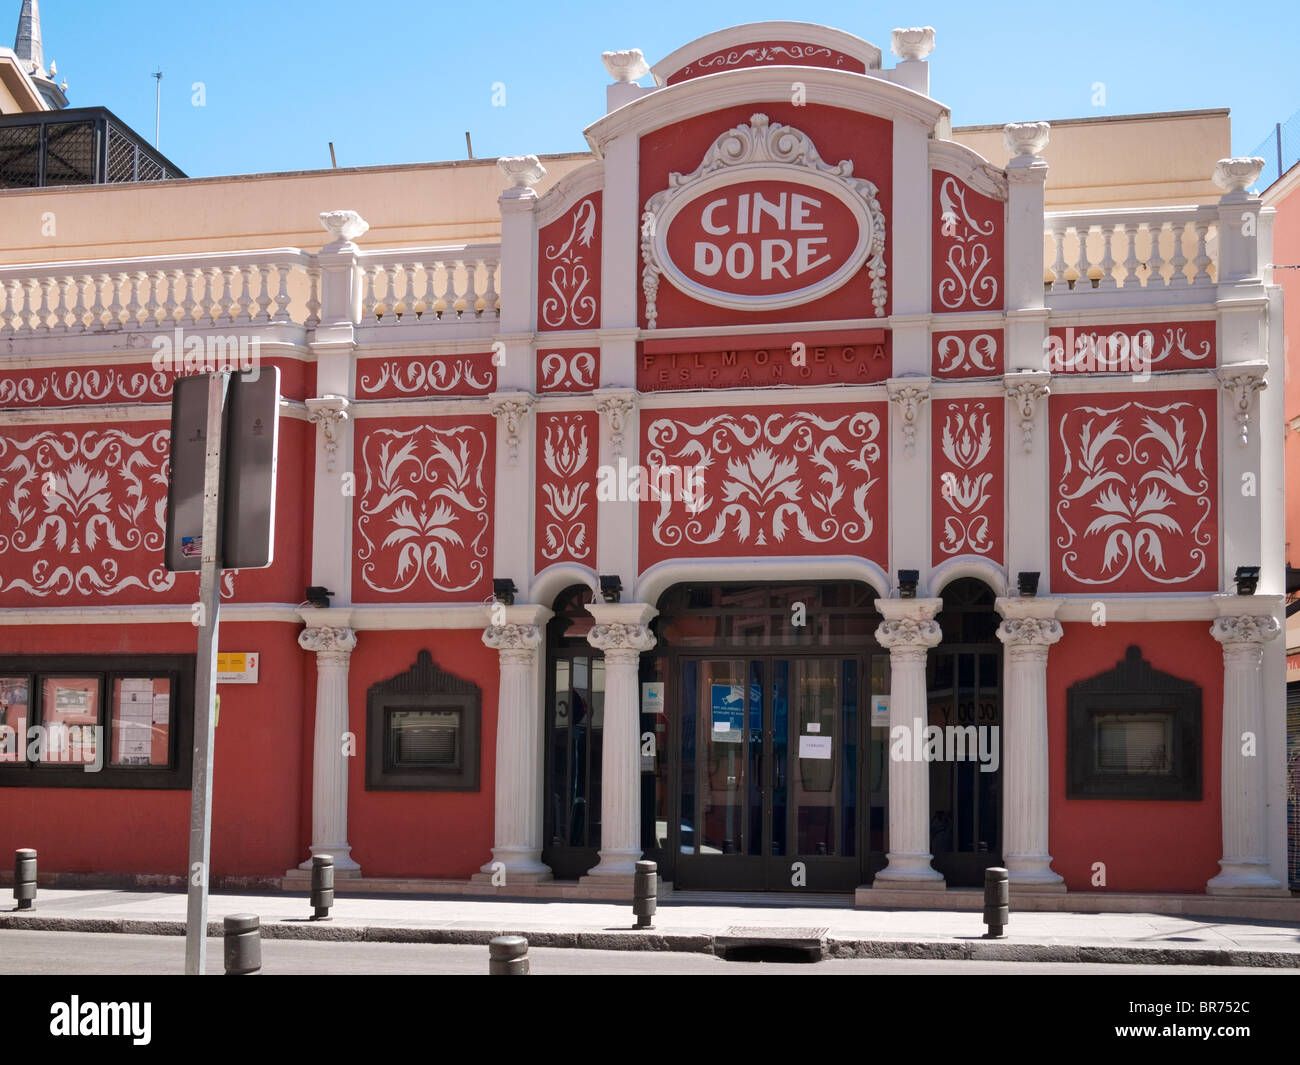 'Cine Doré' (1923), Art House Cinema in Madrid, Spain - Stock Image